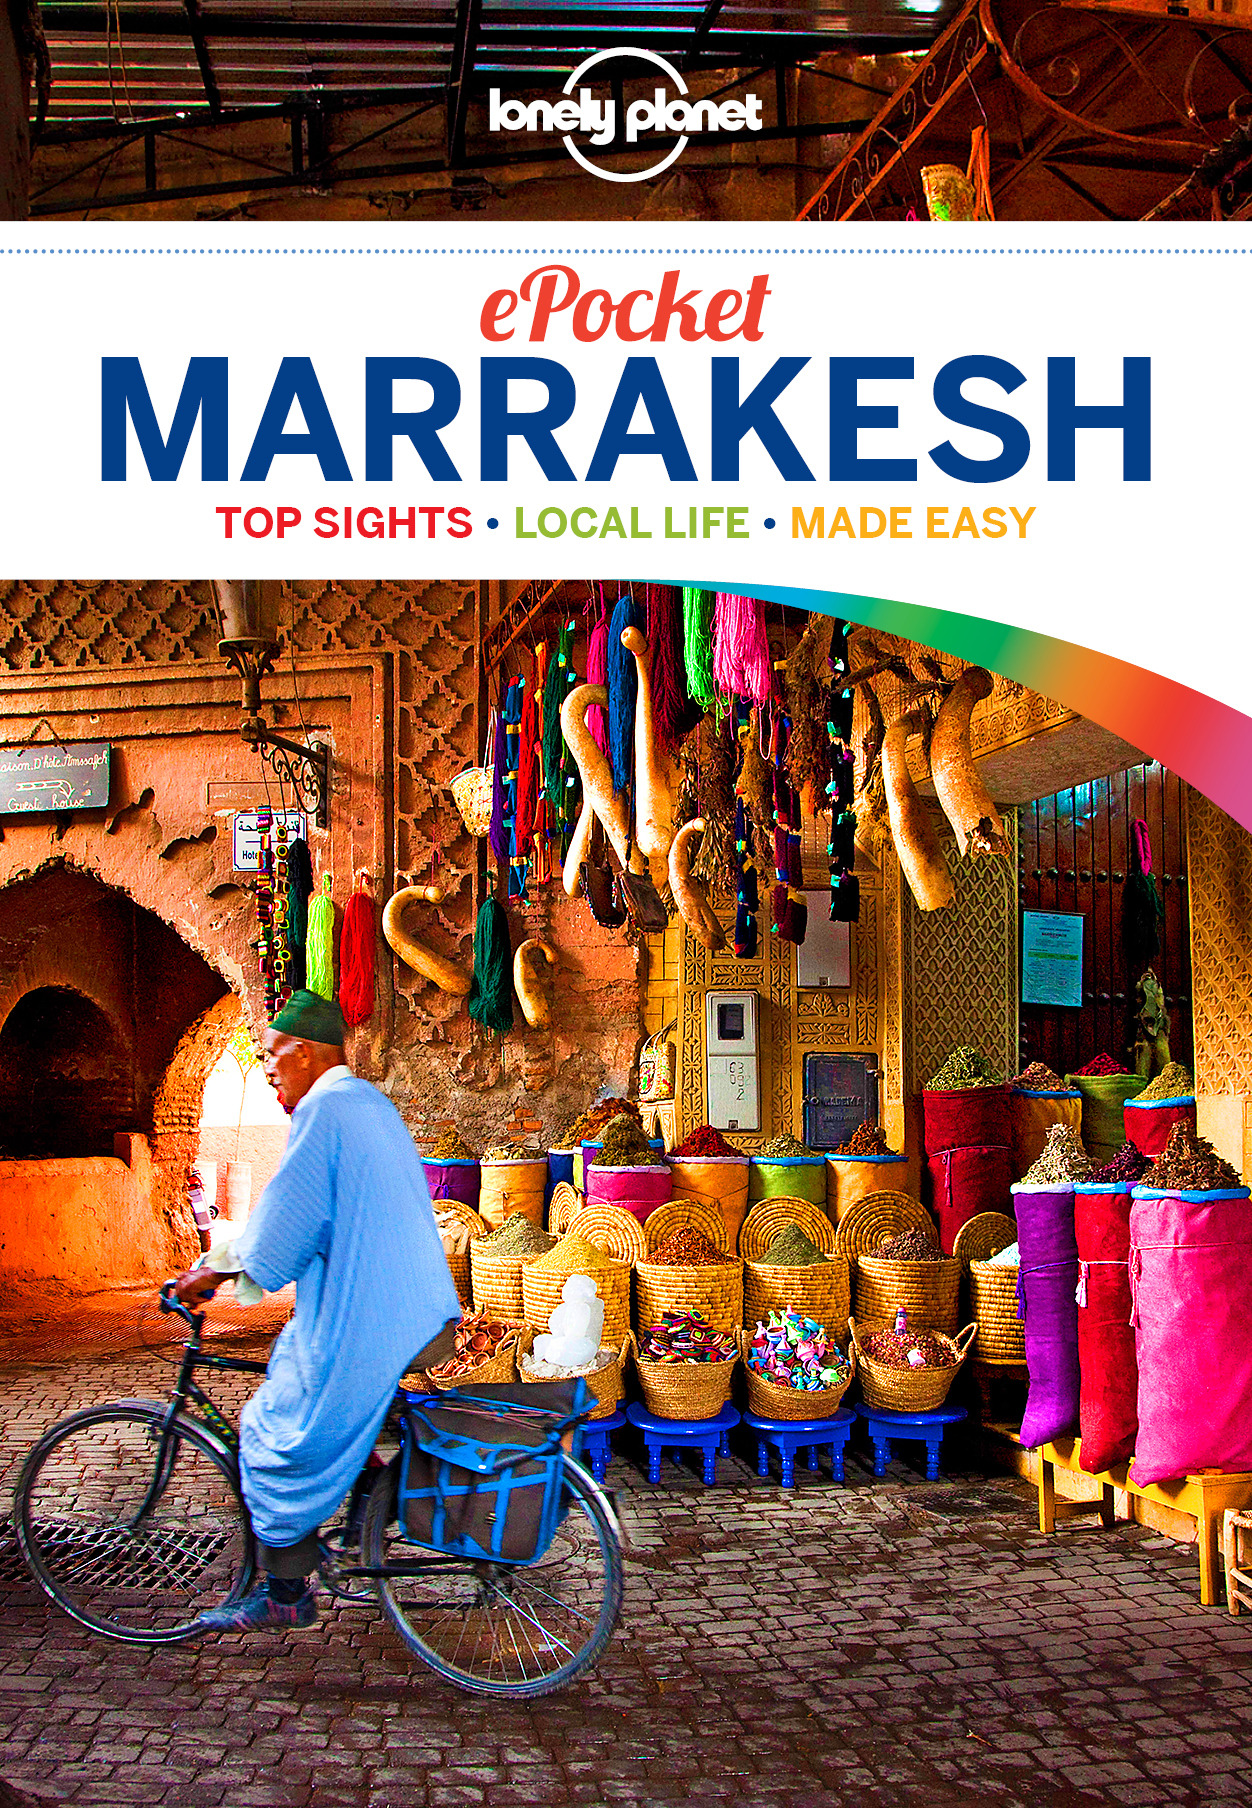 Planet, Lonely - Lonely Planet Pocket Marrakesh, ebook